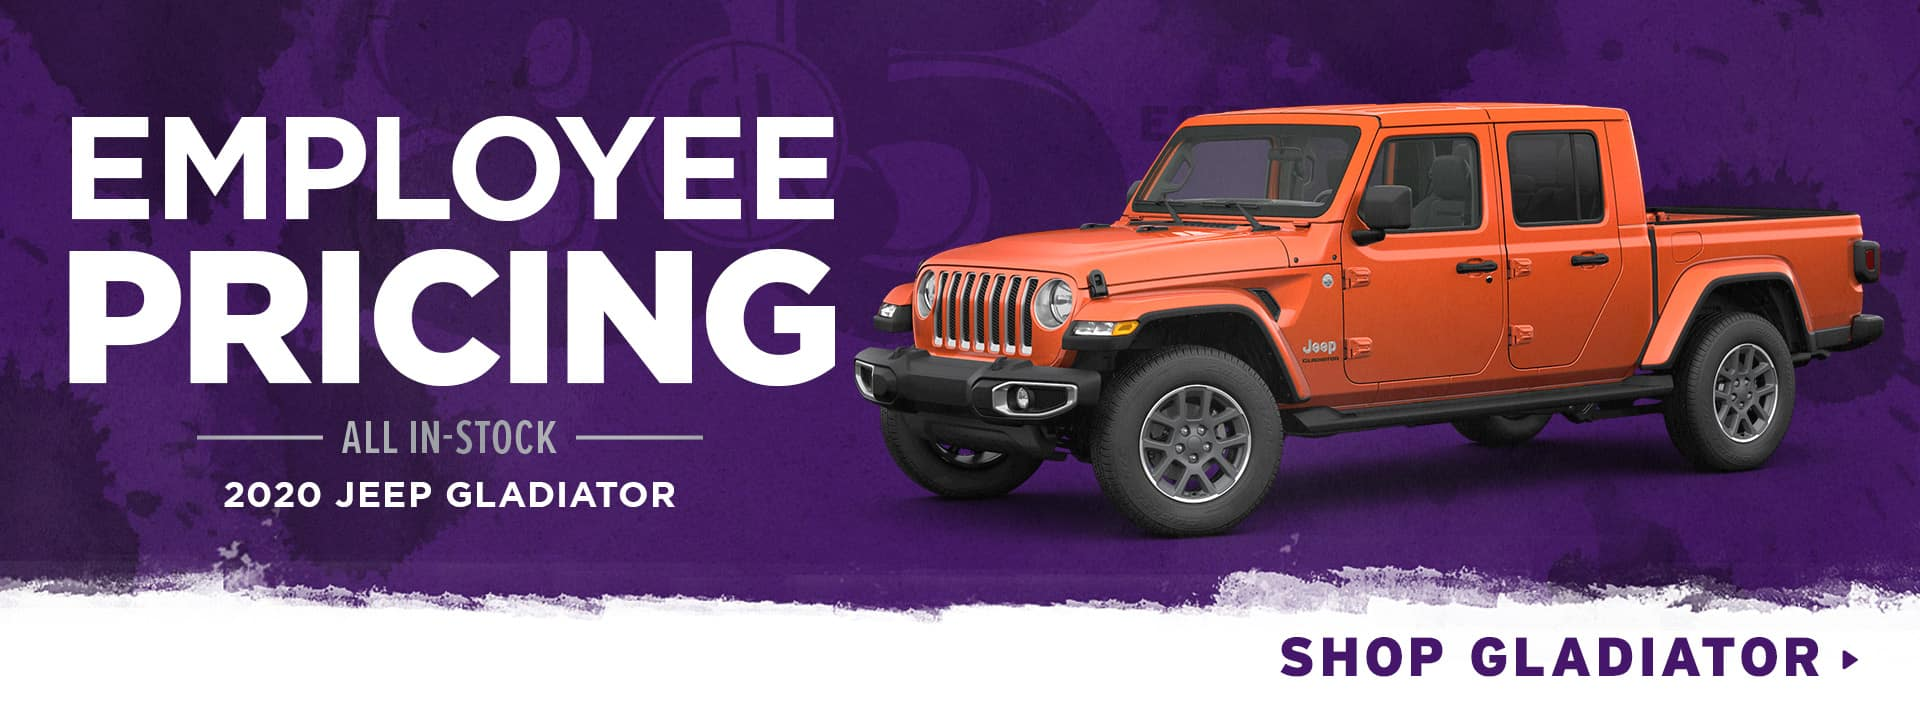 Employee Pricing on All In-Stock 2020 Jeep Gladiator